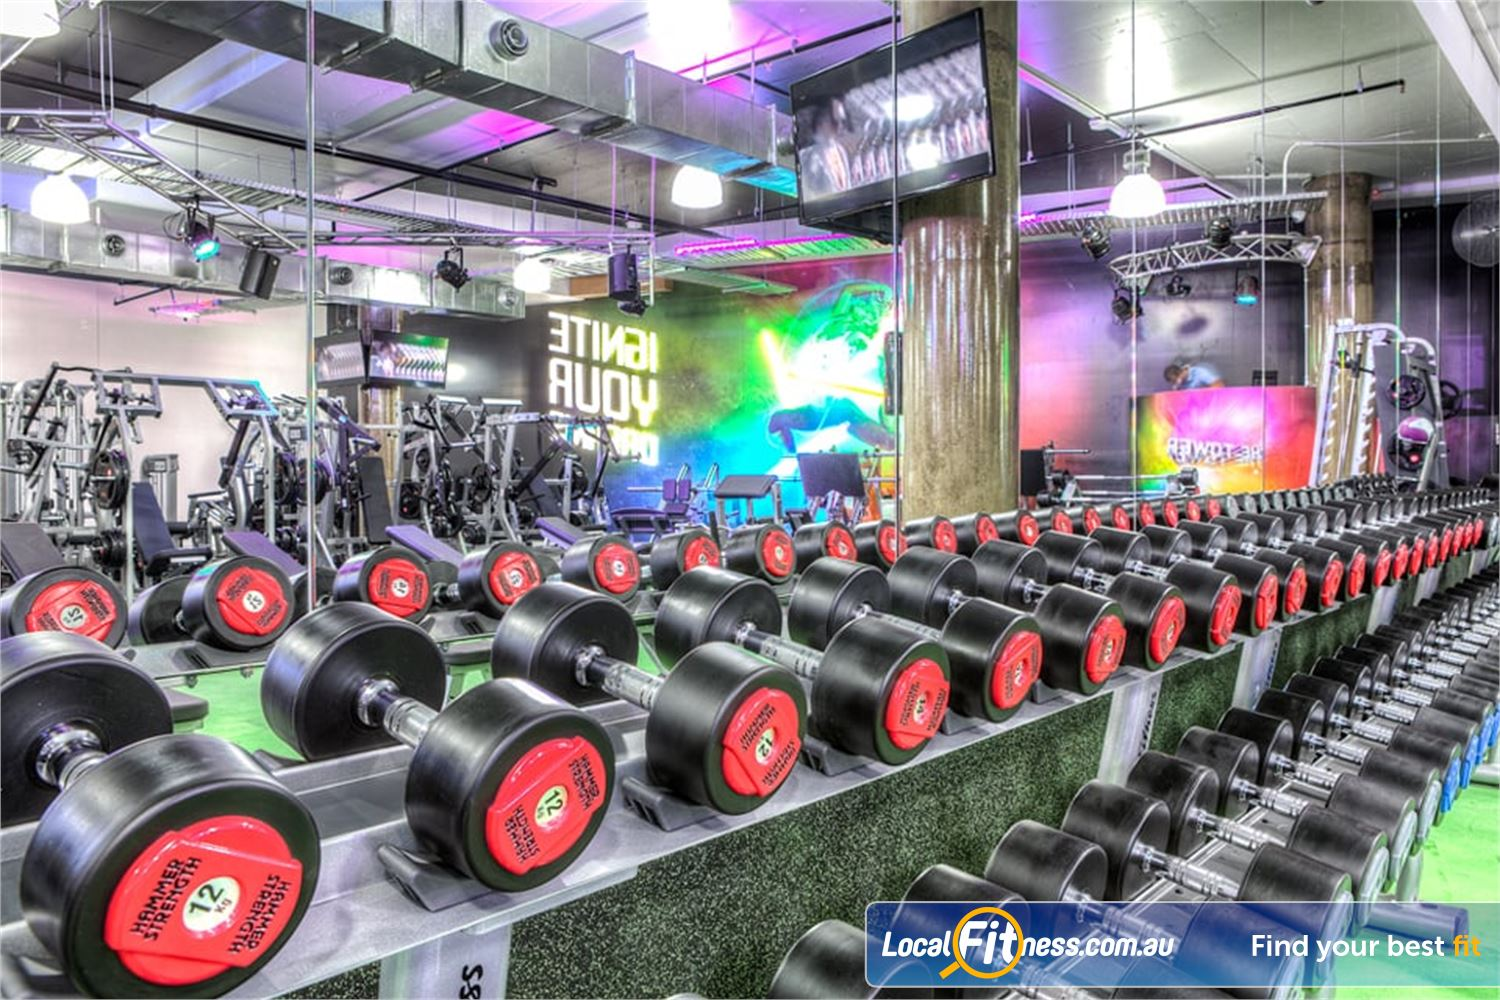 Goodlife Health Clubs Near North Lakes The free-weights area includes dumbbells, barbells, benches and more.